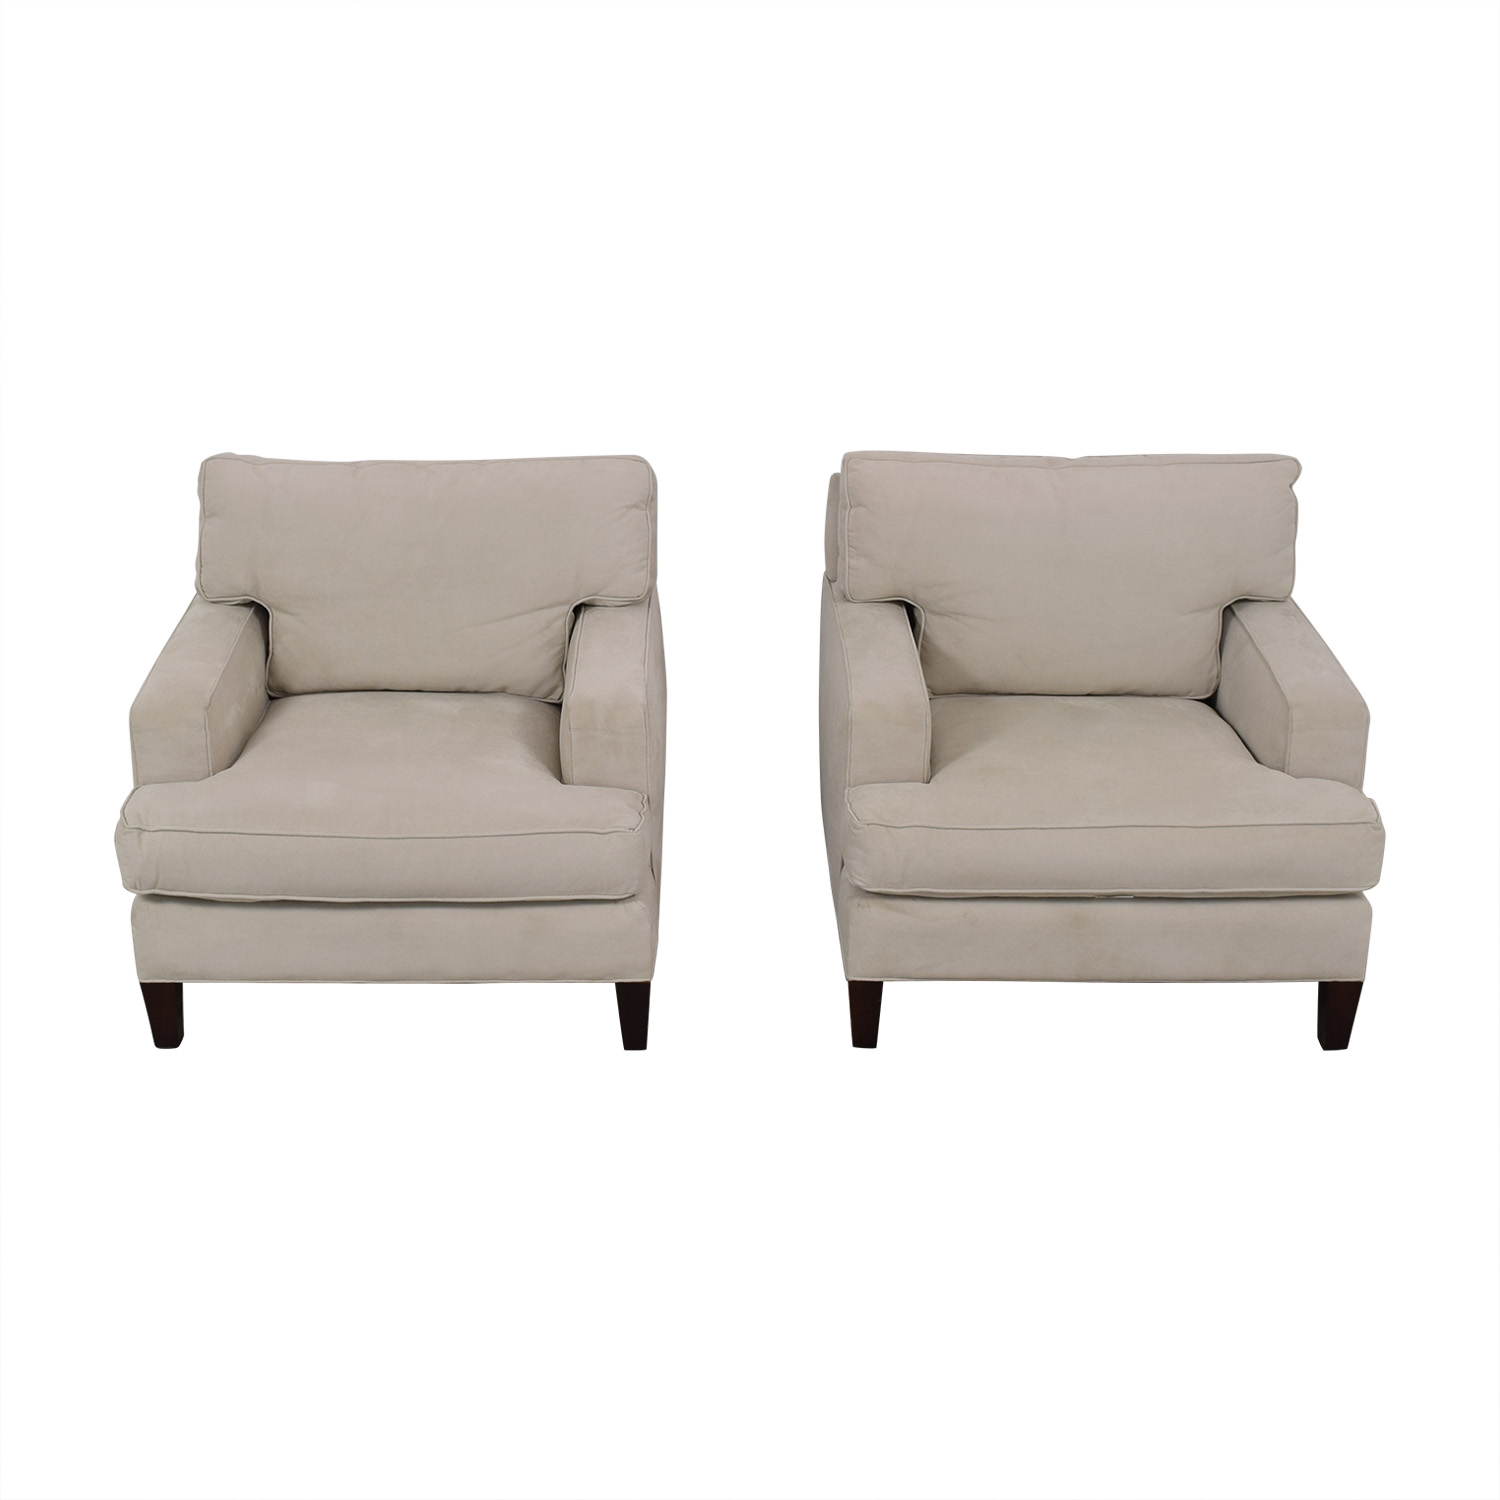 White Accent Chairs Used.85 Off Room Board Room Board Hawthorne White Accent Chairs Chairs